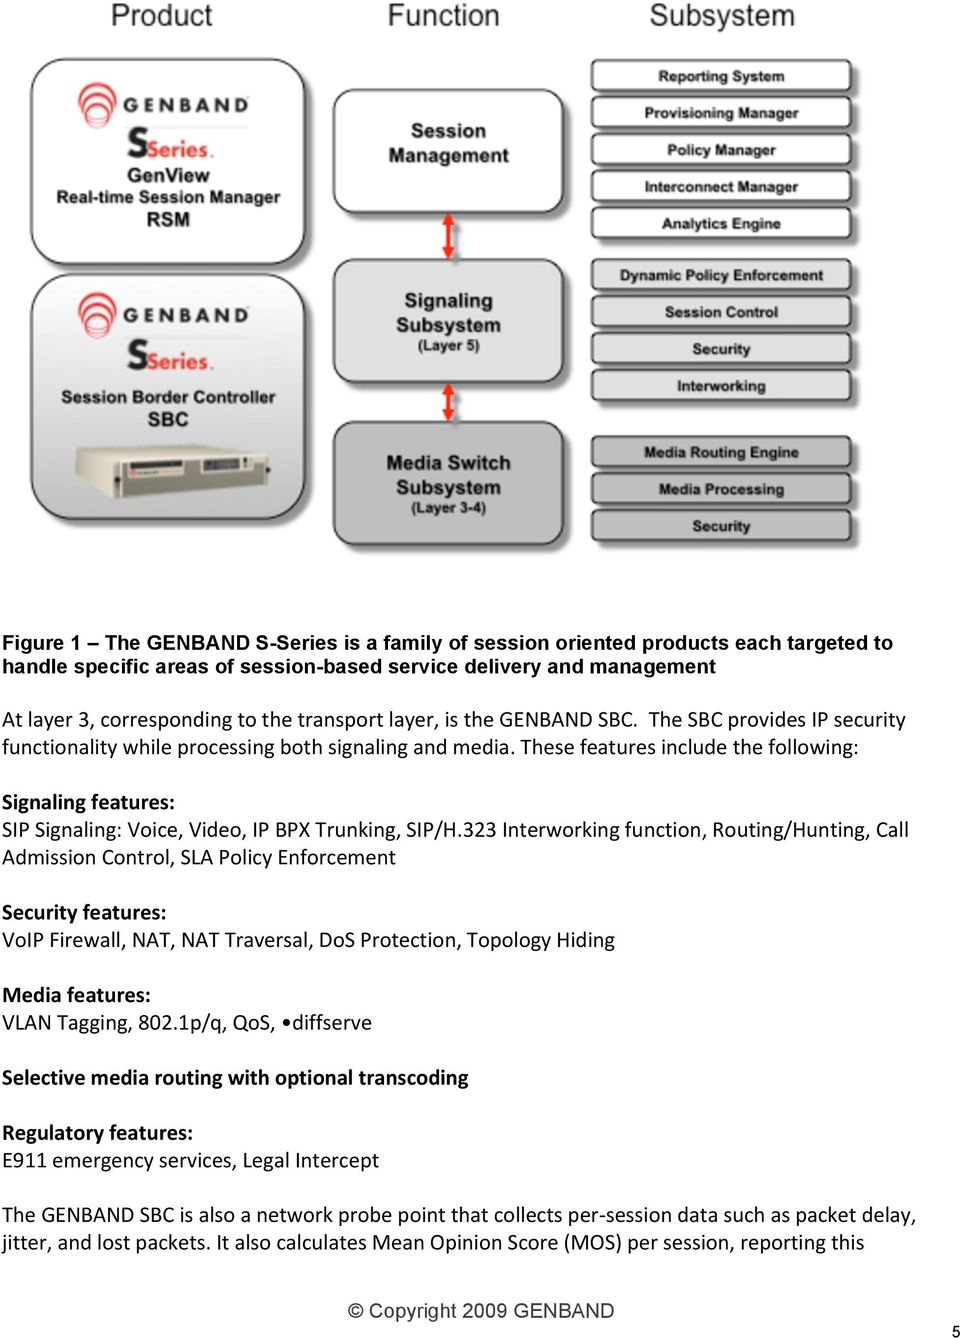 thesefeaturesincludethefollowing: Signalingfeatures: SIPSignaling:Voice,Video,IPBPXTrunking,SIP/H.